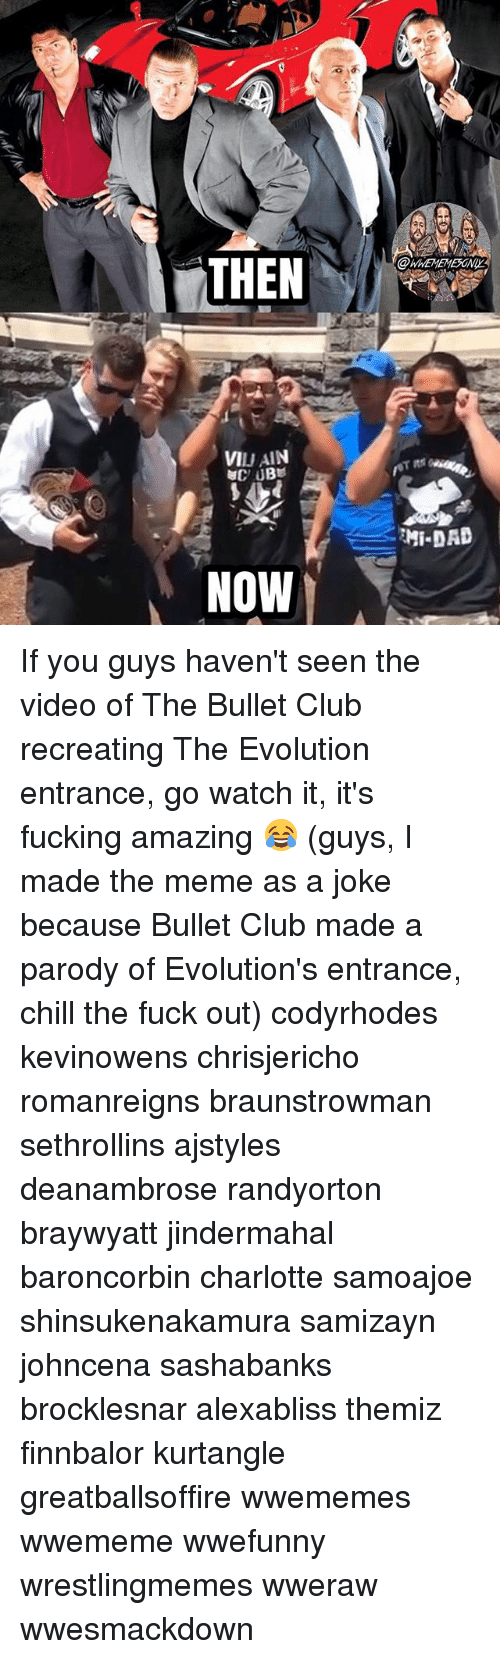 Chill, Club, and Fucking: THEN  OWNEMEMESONY  VIJAIN  NOW If you guys haven't seen the video of The Bullet Club recreating The Evolution entrance, go watch it, it's fucking amazing 😂 (guys, I made the meme as a joke because Bullet Club made a parody of Evolution's entrance, chill the fuck out) codyrhodes kevinowens chrisjericho romanreigns braunstrowman sethrollins ajstyles deanambrose randyorton braywyatt jindermahal baroncorbin charlotte samoajoe shinsukenakamura samizayn johncena sashabanks brocklesnar alexabliss themiz finnbalor kurtangle greatballsoffire wwememes wwememe wwefunny wrestlingmemes wweraw wwesmackdown